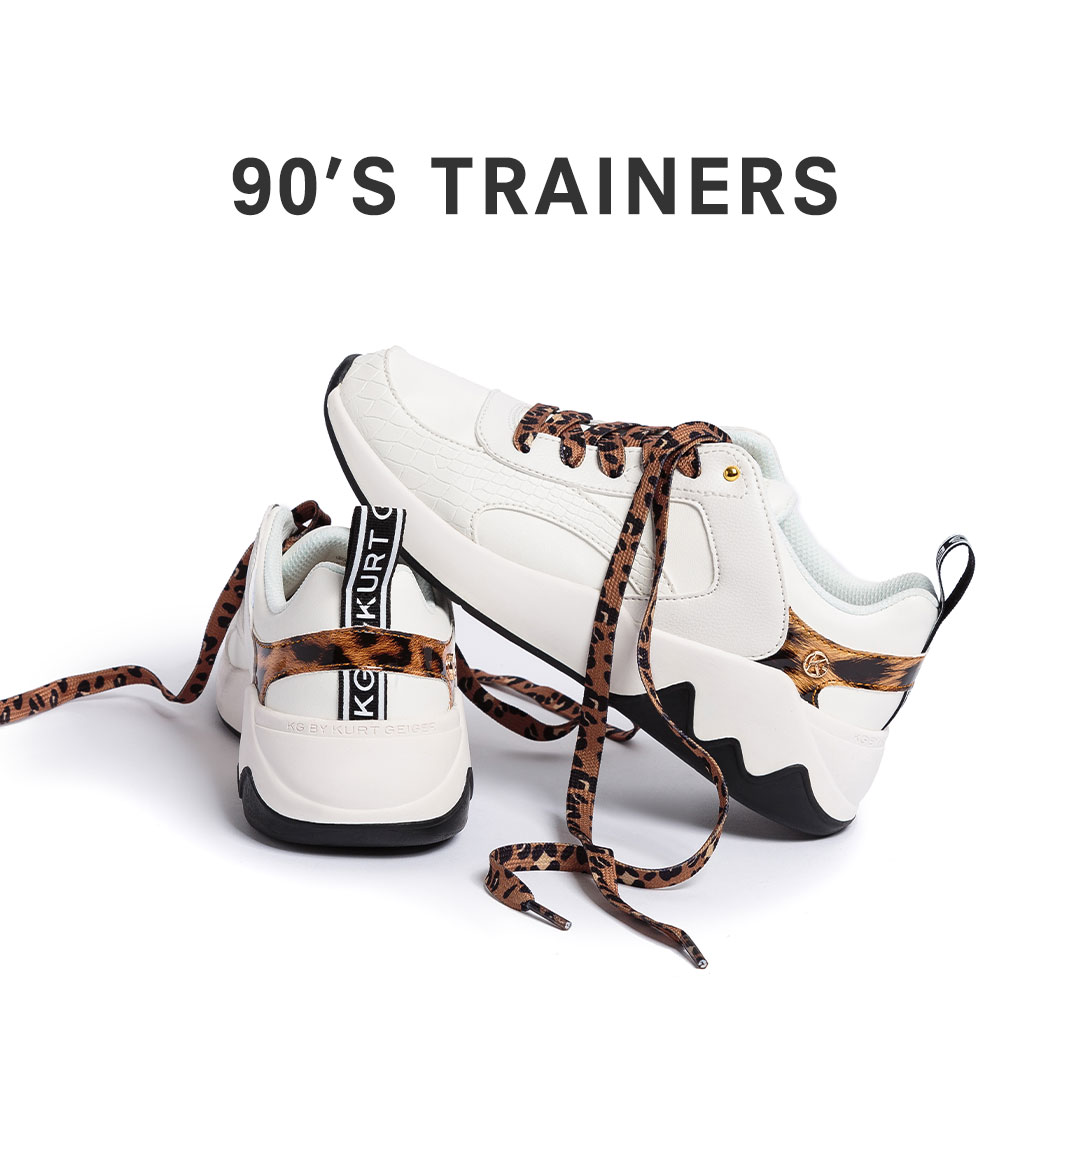 90's Trainers